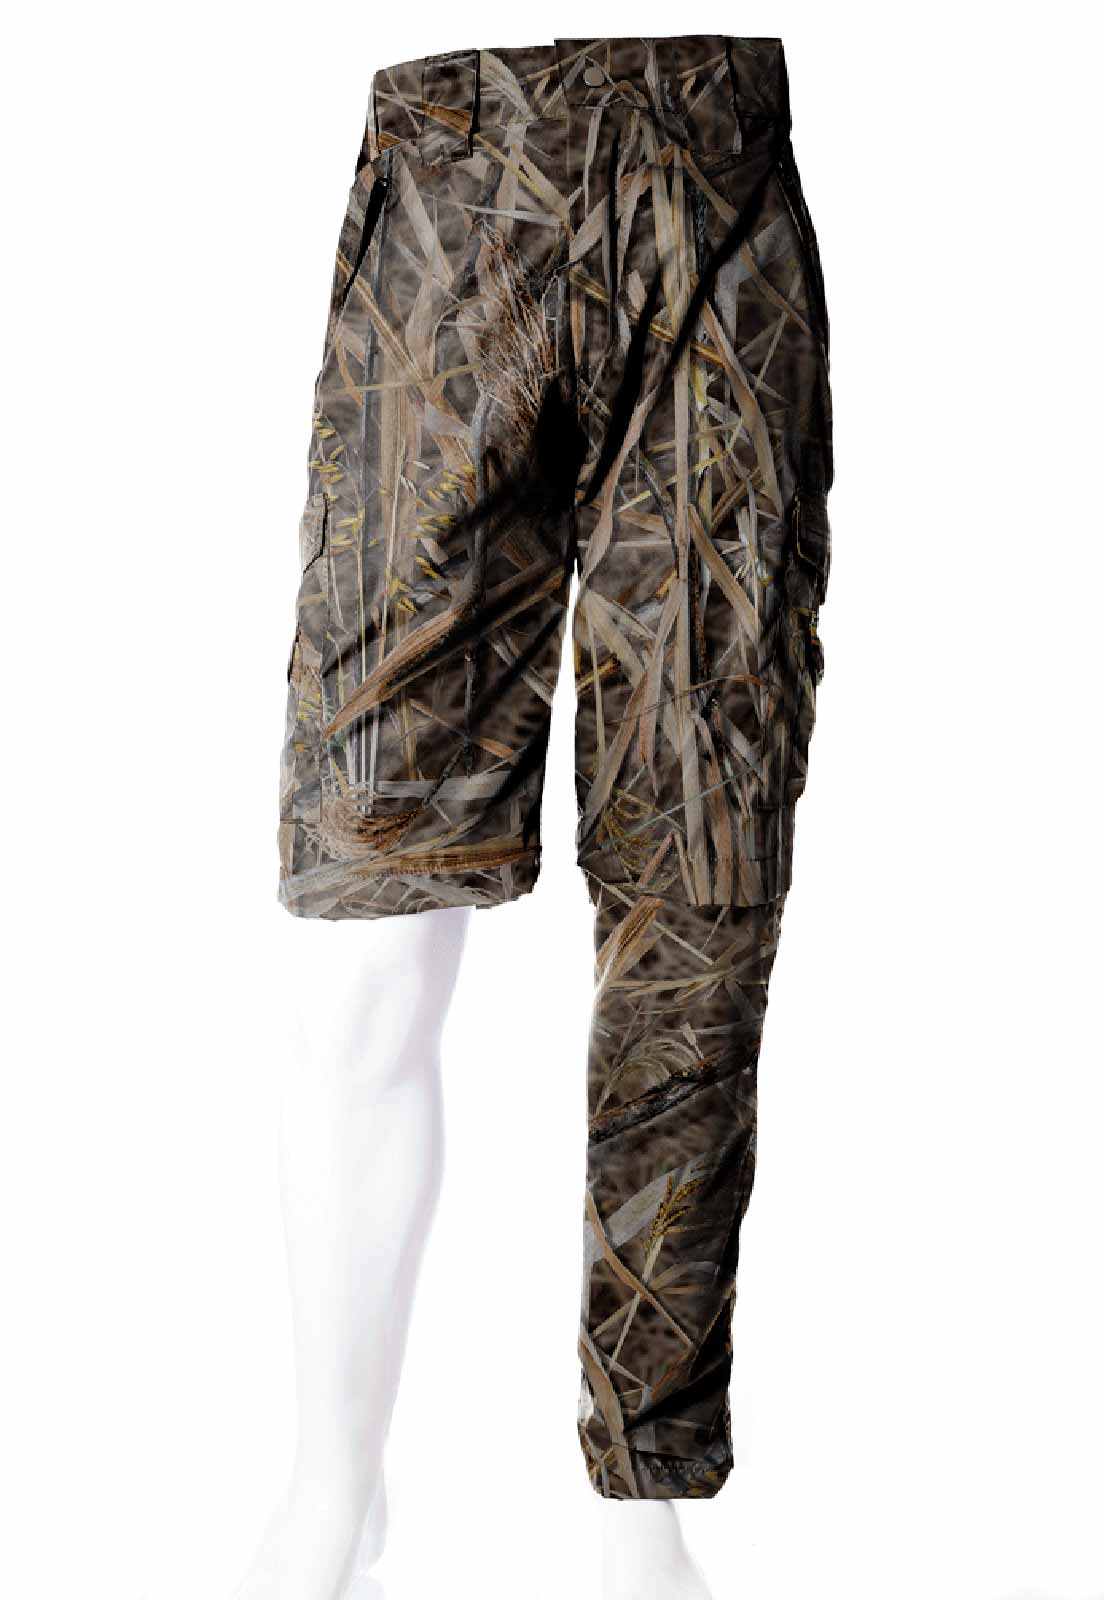 Calça-Bermuda Camuflada Folhagem Palhada UltraLight Masculina  - REAL HUNTER OUTDOORS